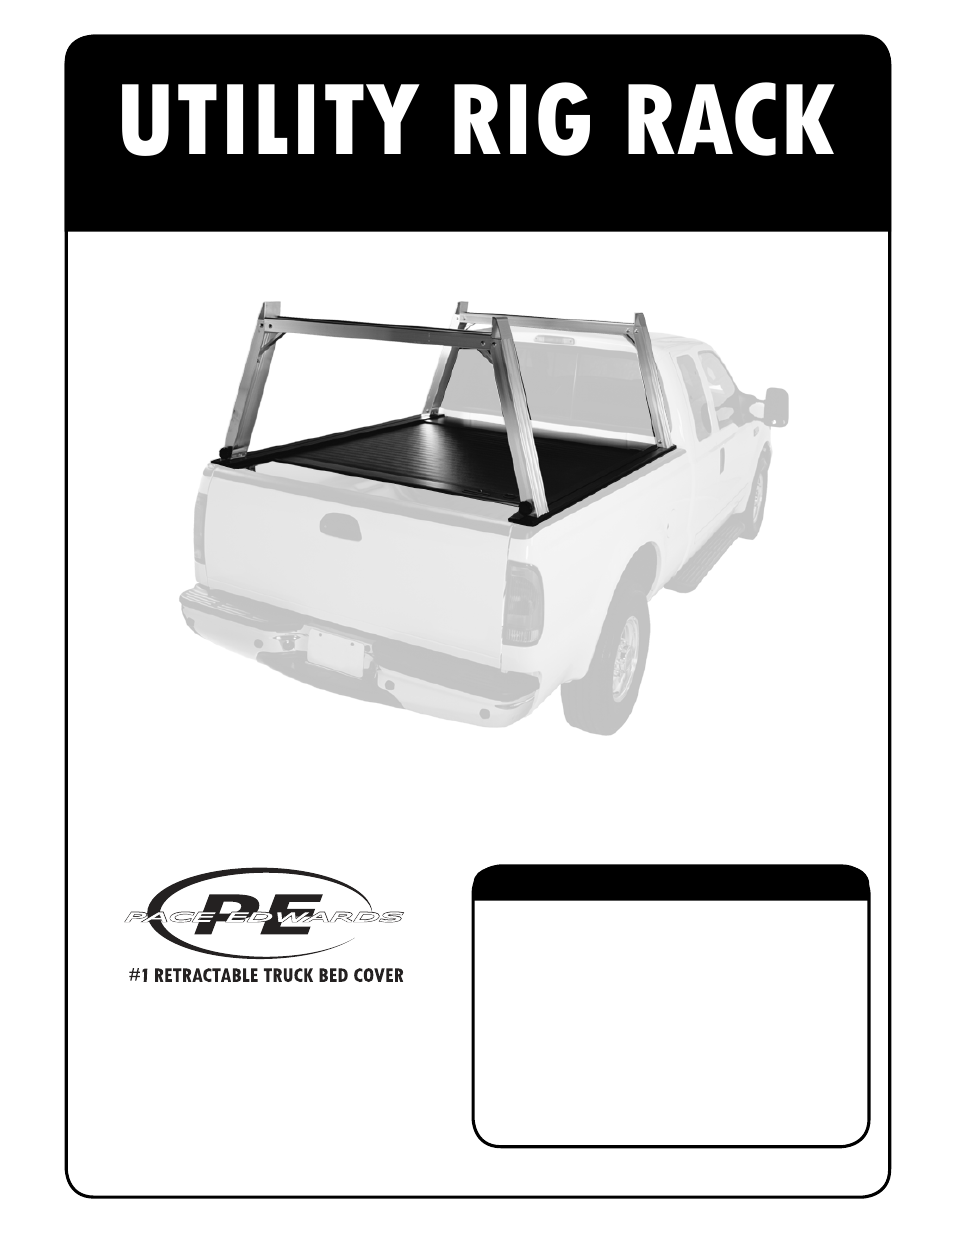 Pace-Edwards Utility Rig Rack User Manual | 16 pages